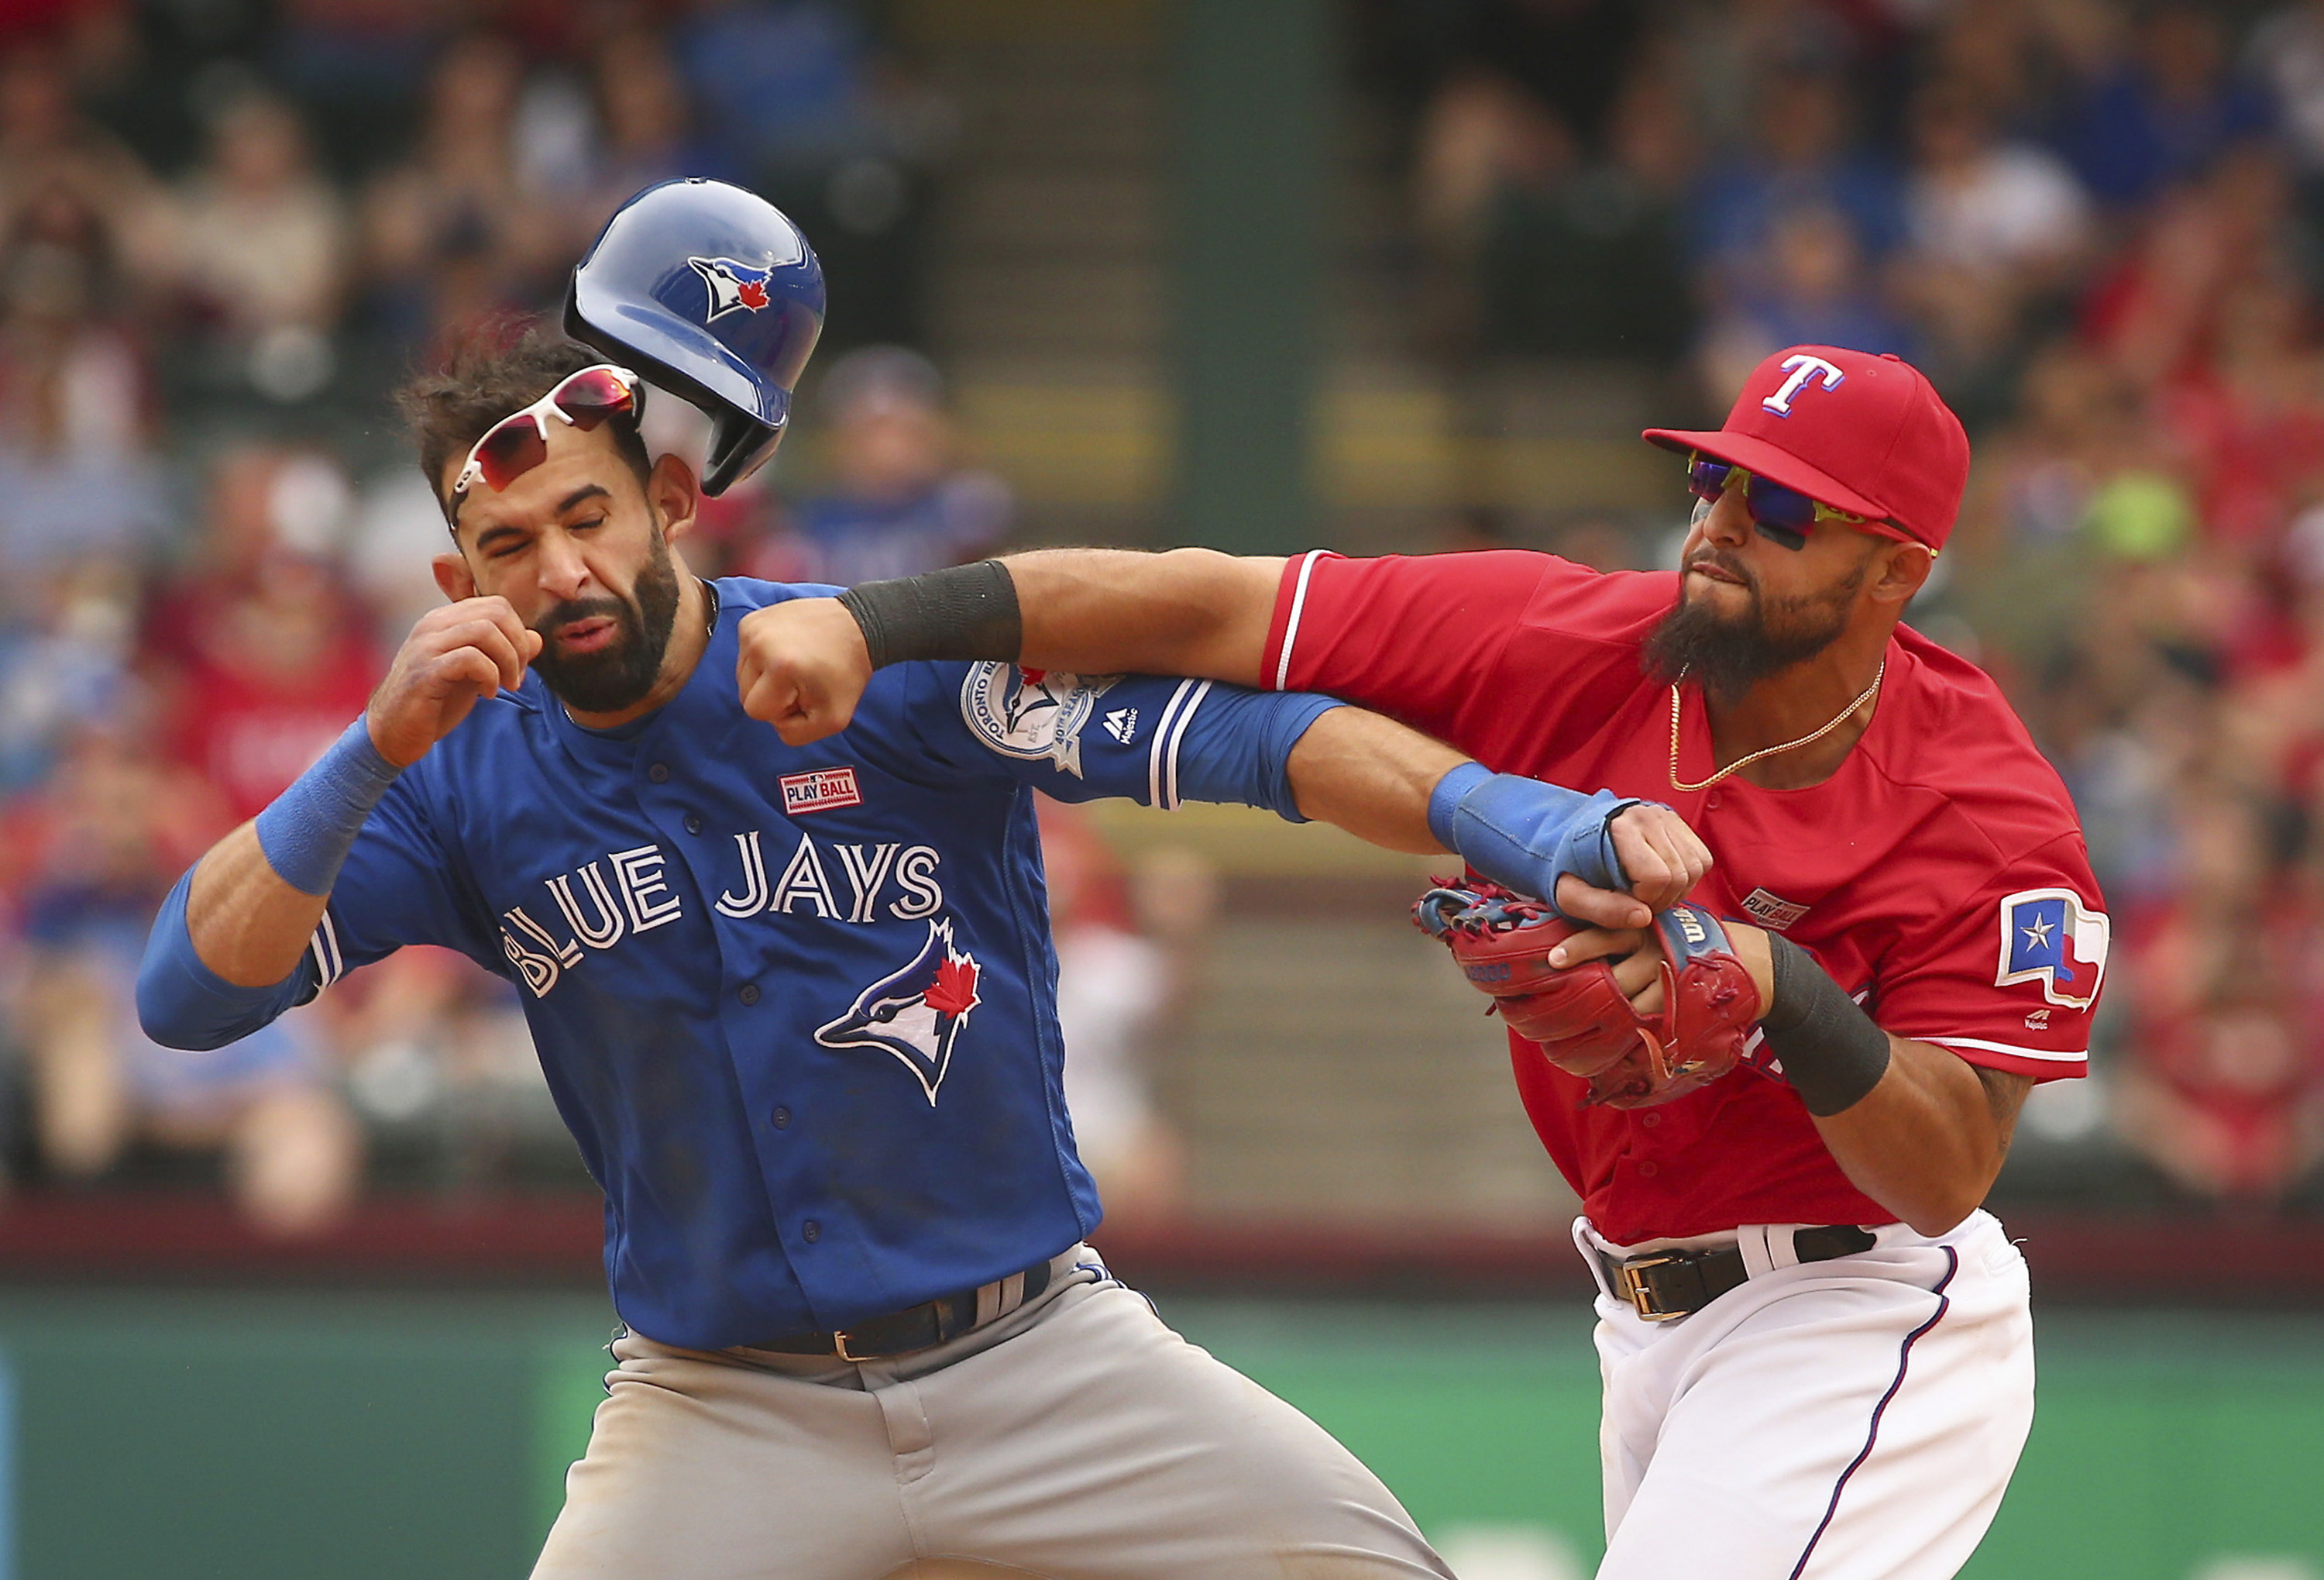 Rangers beat Blue Jays 7-6